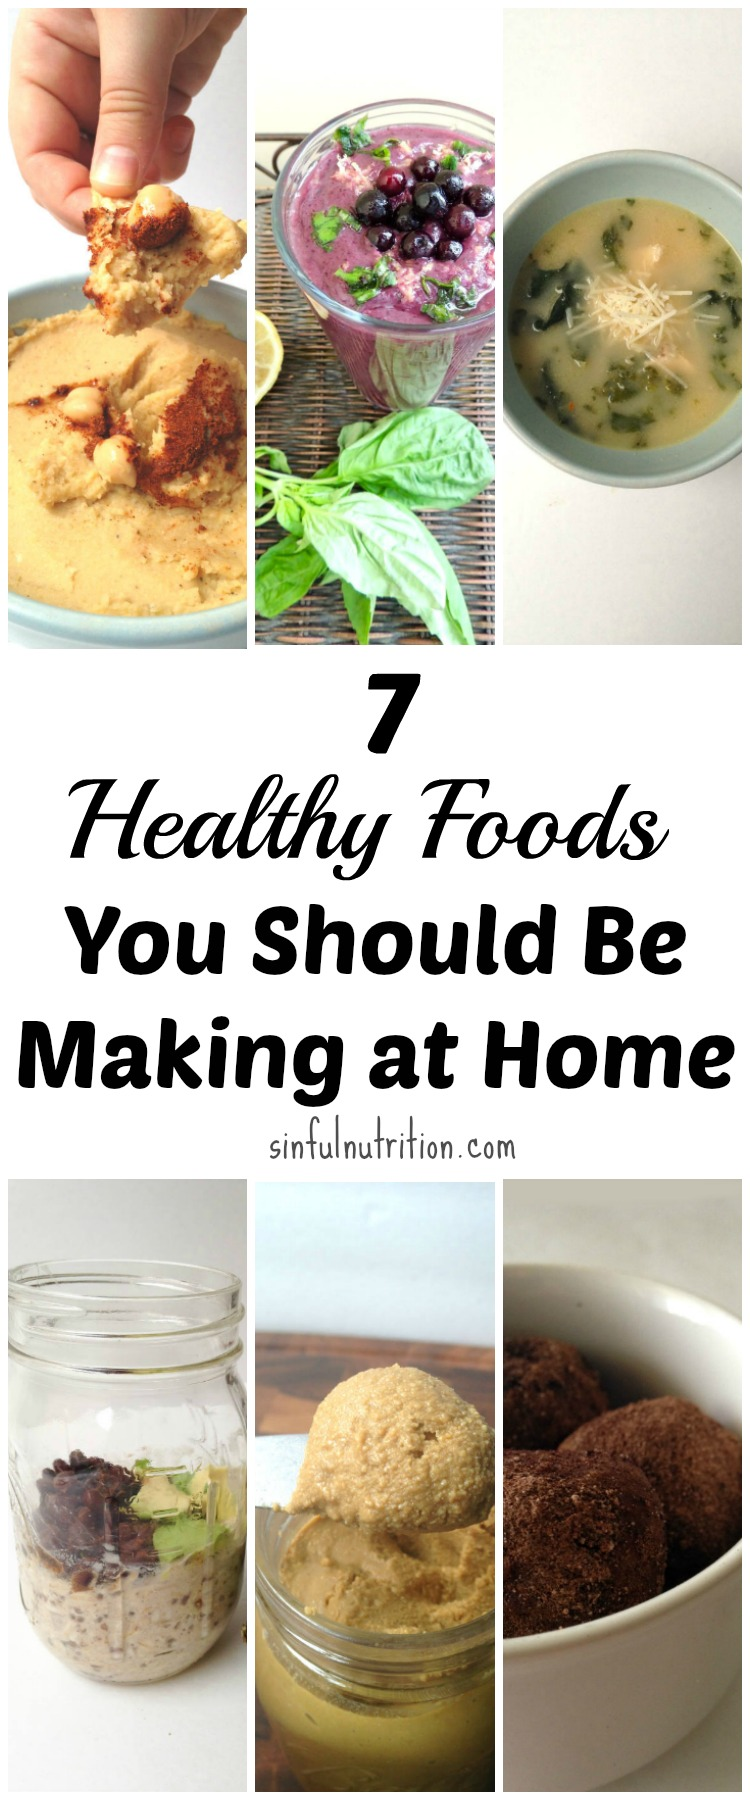 7 Healthy Foods You Should Be Making At Home